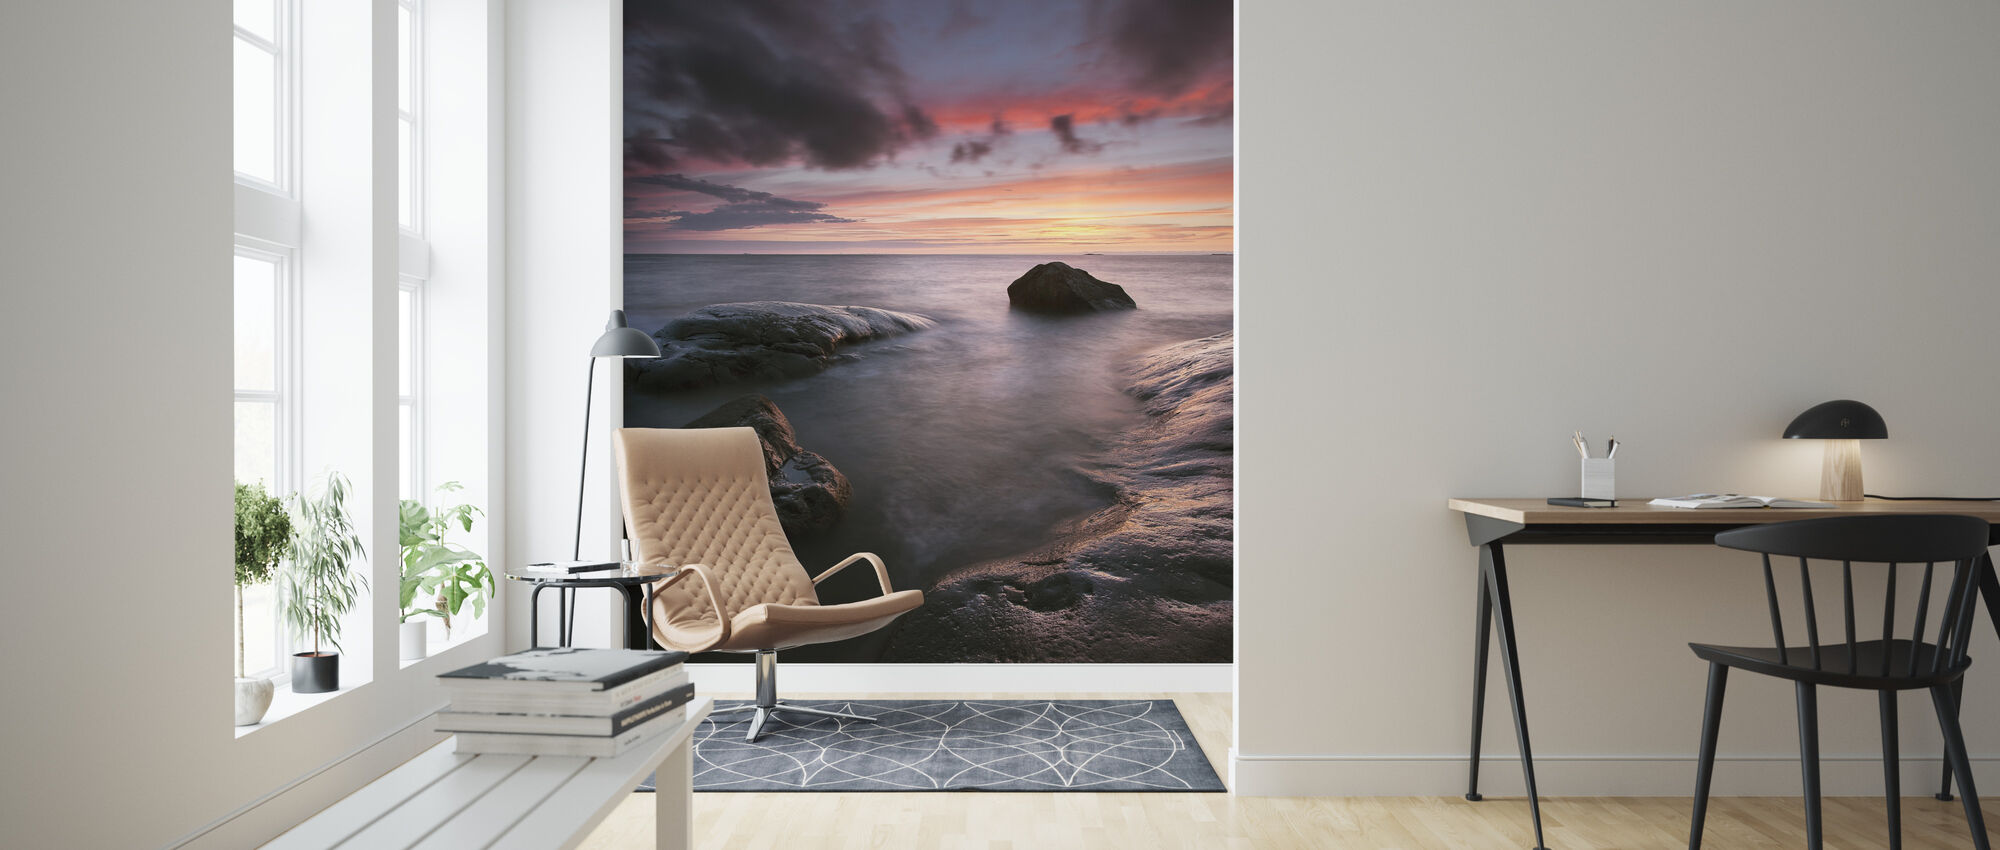 Sunset, Hönö - Sweden - Wallpaper - Living Room